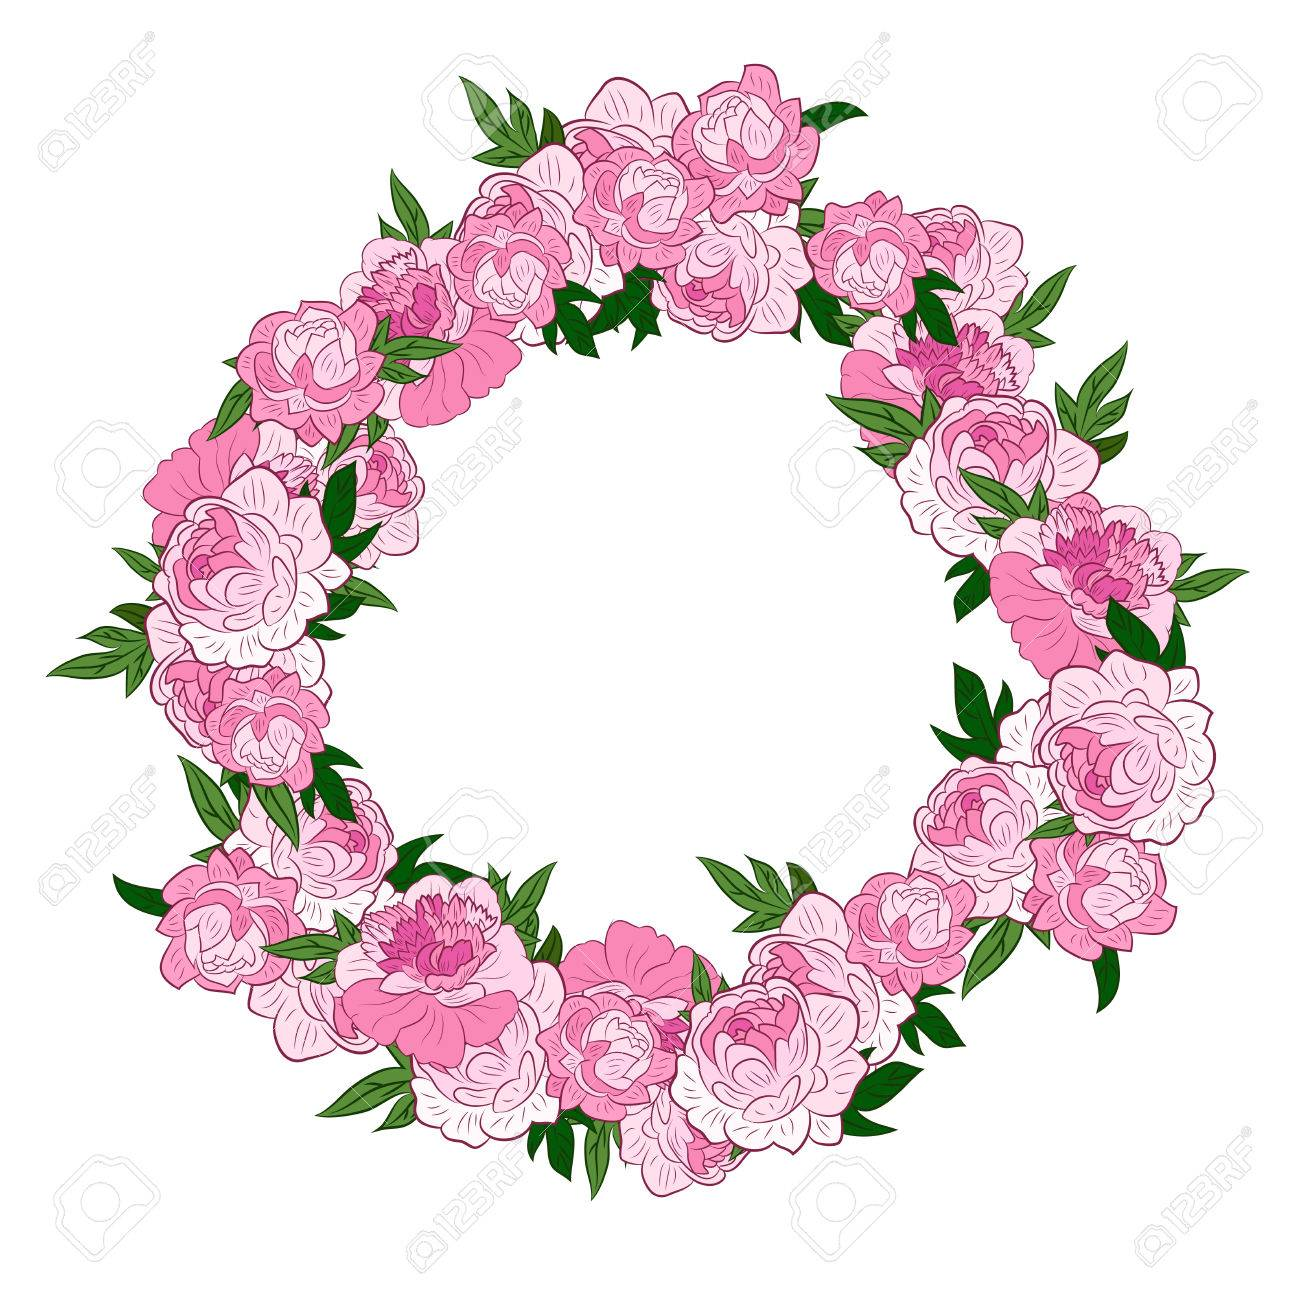 Pink flowers arranged un a shape of the wreath perfect for wedding pink flowers arranged un a shape of the wreath perfect for wedding invitations and birthday cards izmirmasajfo